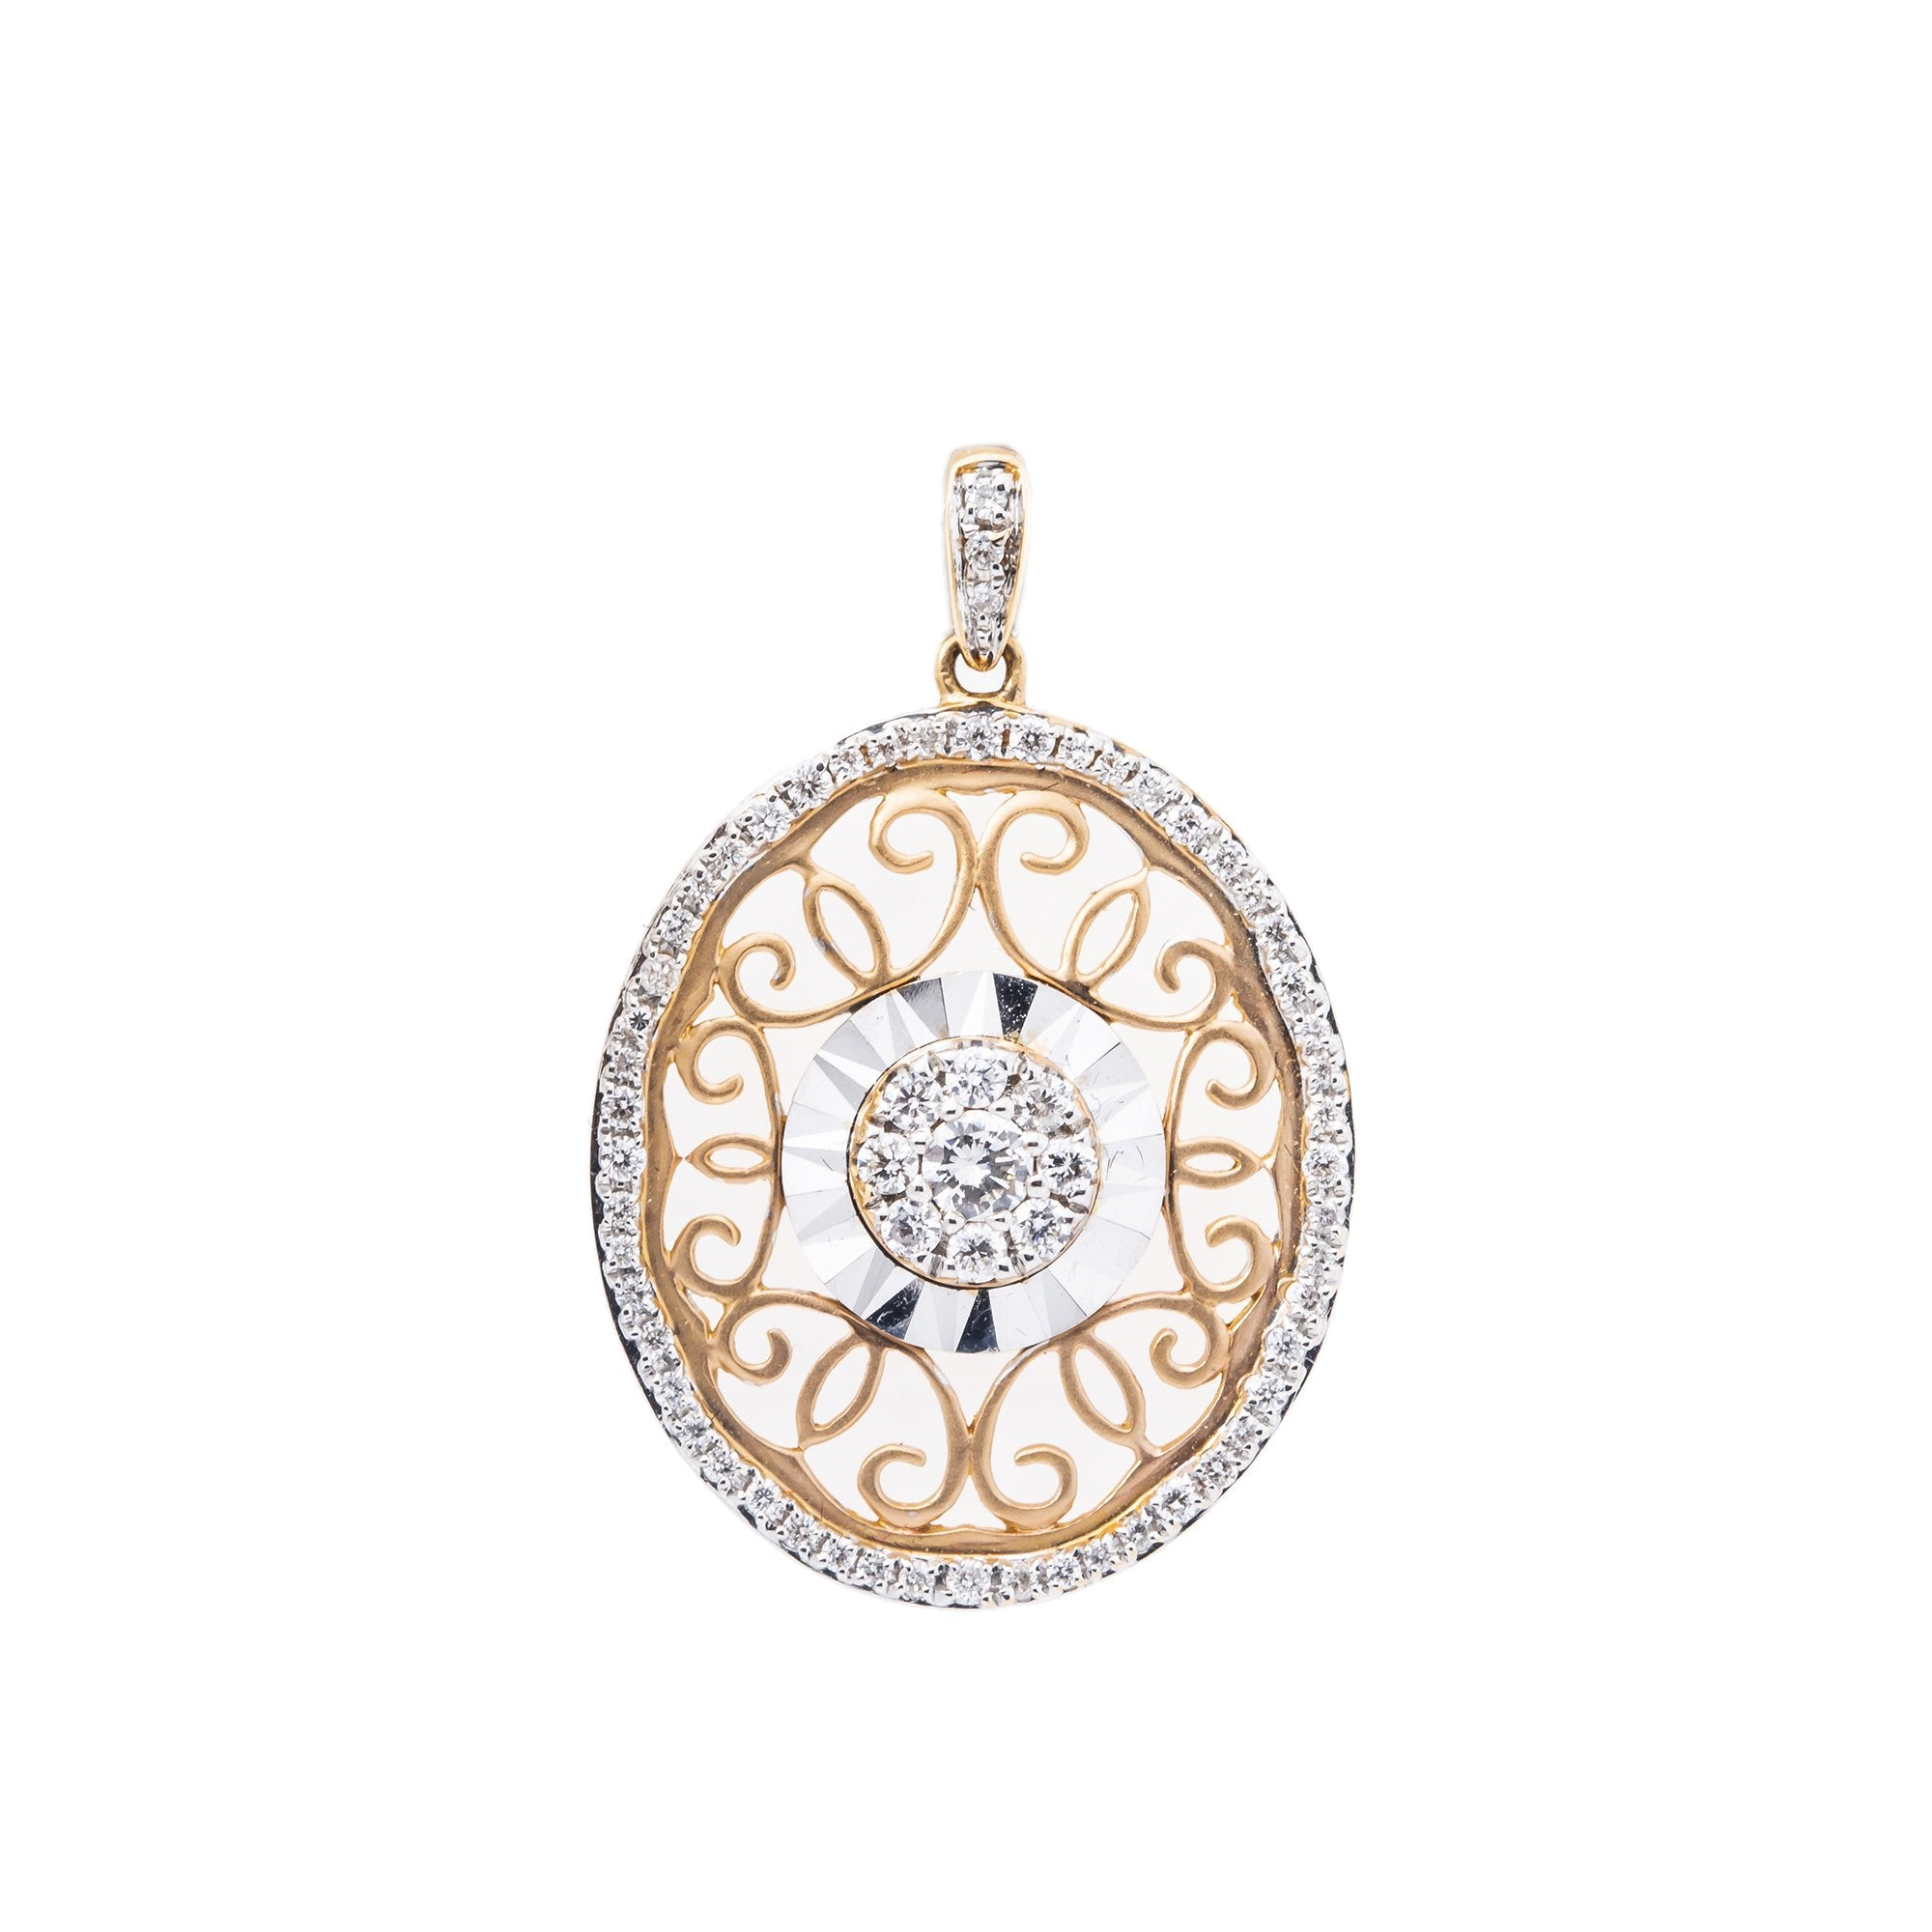 18K White And Rose Gold Pendant with Diamond